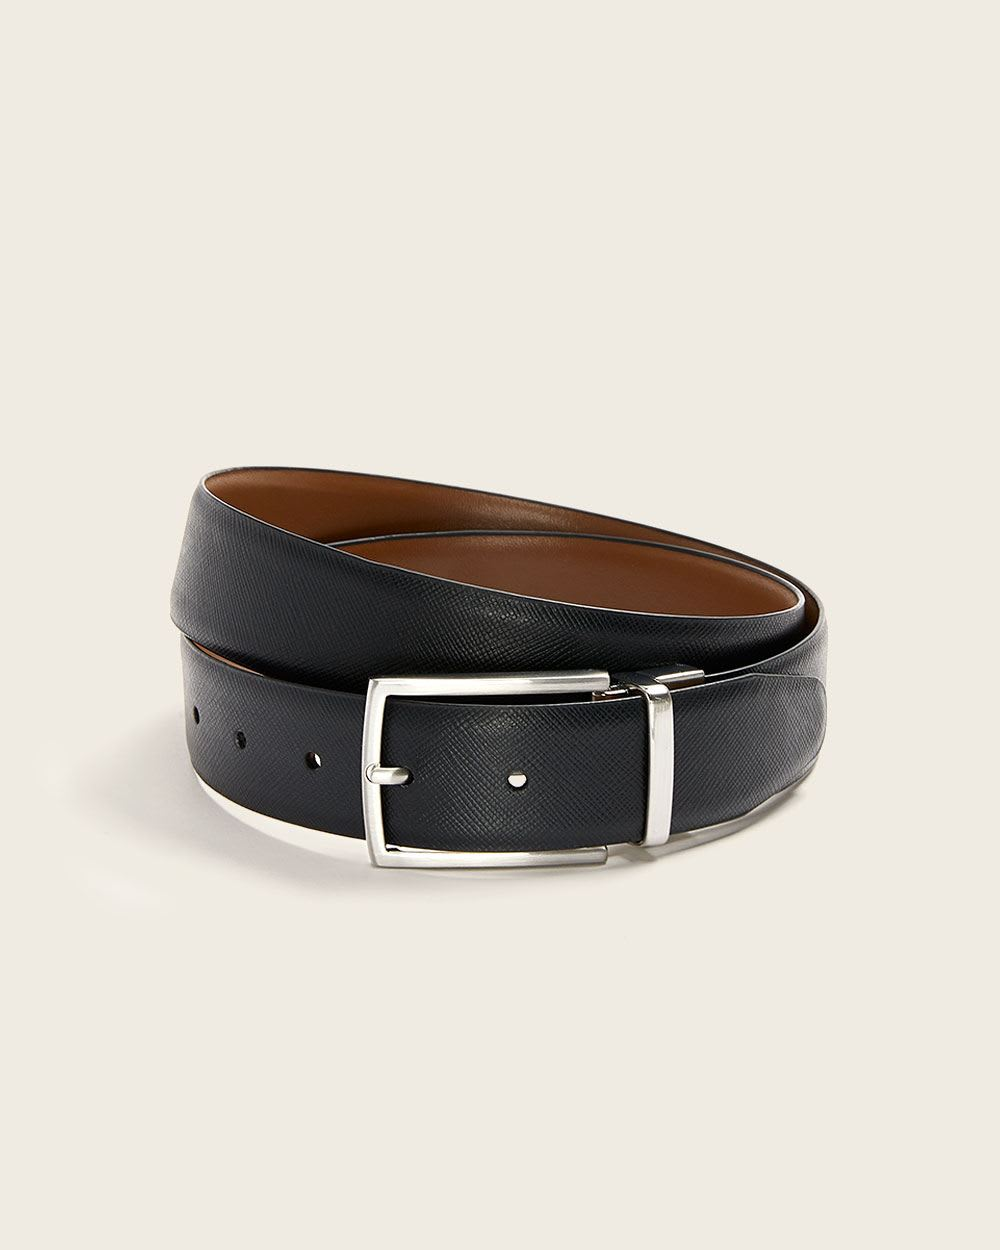 Reversible black and tan leather belt